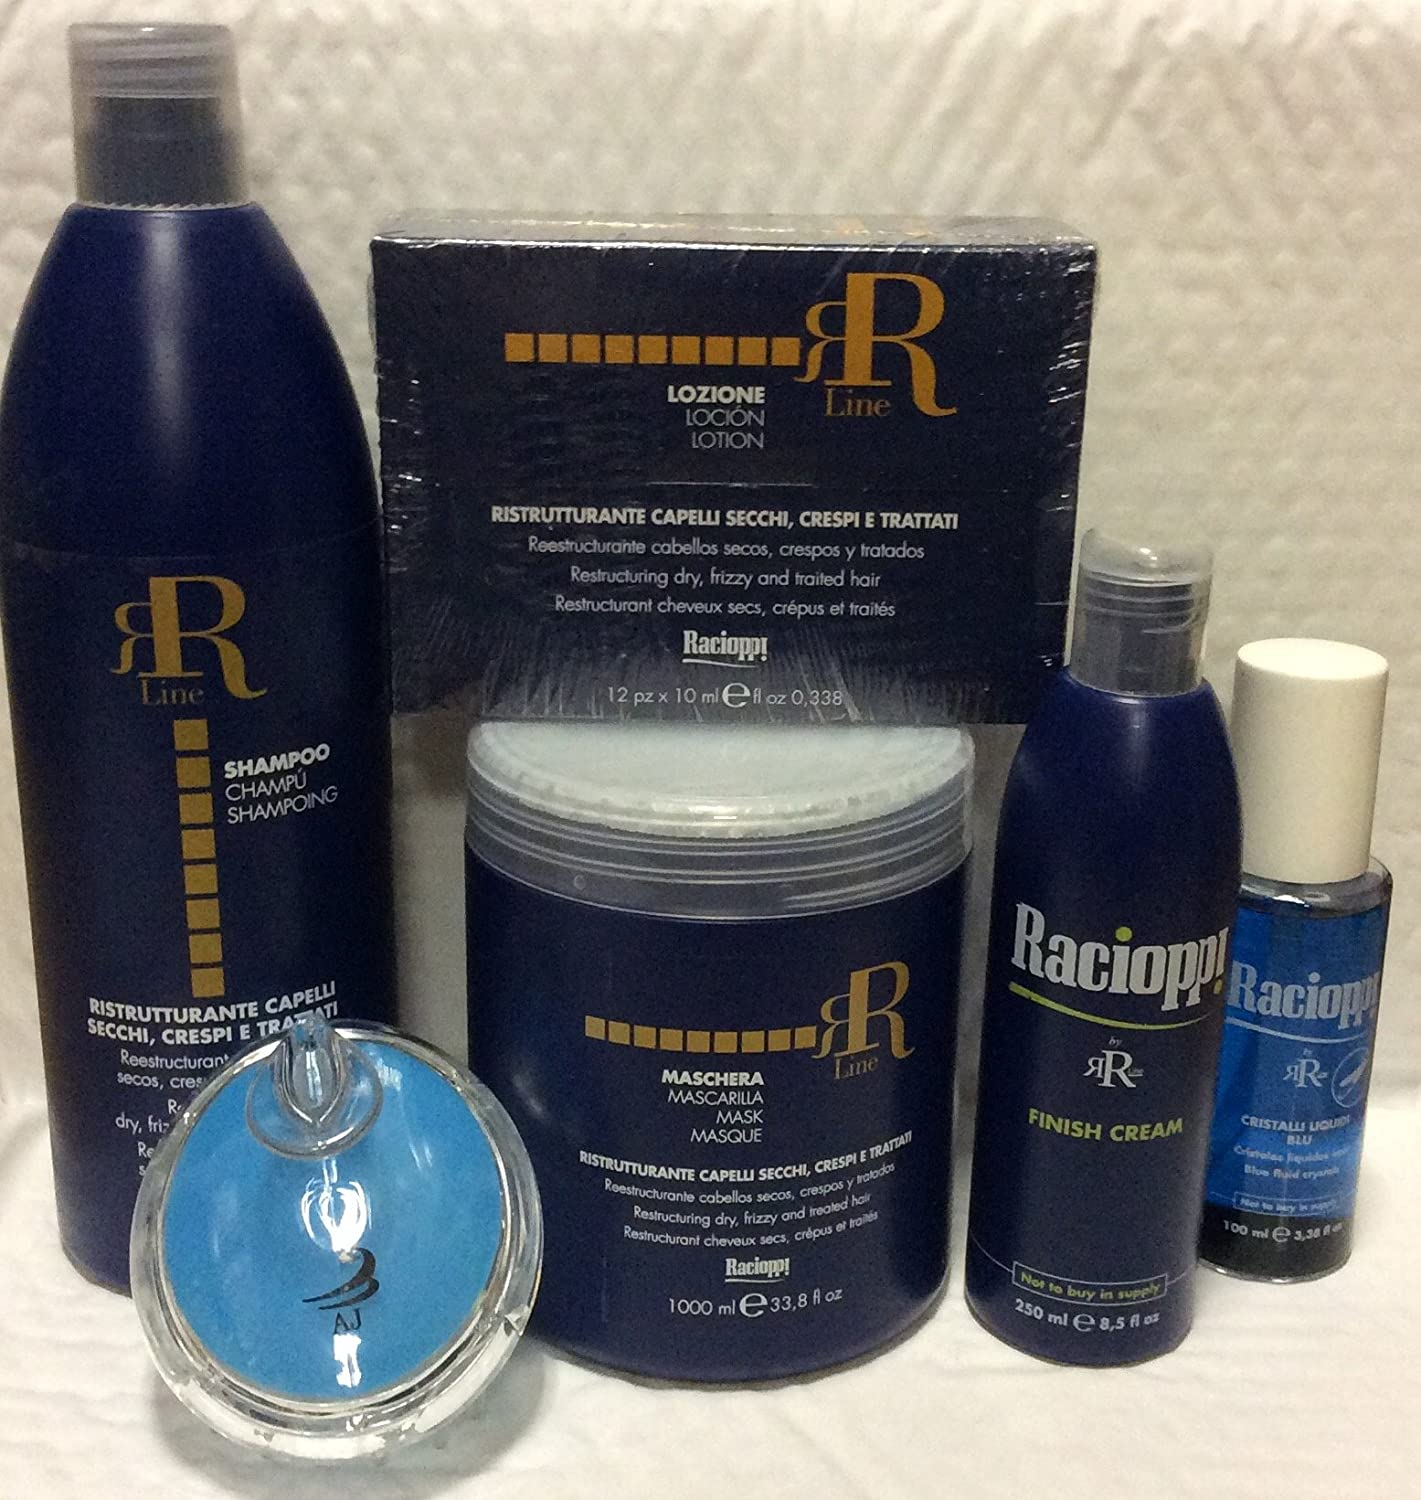 Amazon.com: Rr Line Racioppi Bundle for Damage Hair: Shampoo Restructuring 33.8 Oz, AJ shampoo Brush,Mask 33.8 Oz, Restructuring Lotion Vials, ...